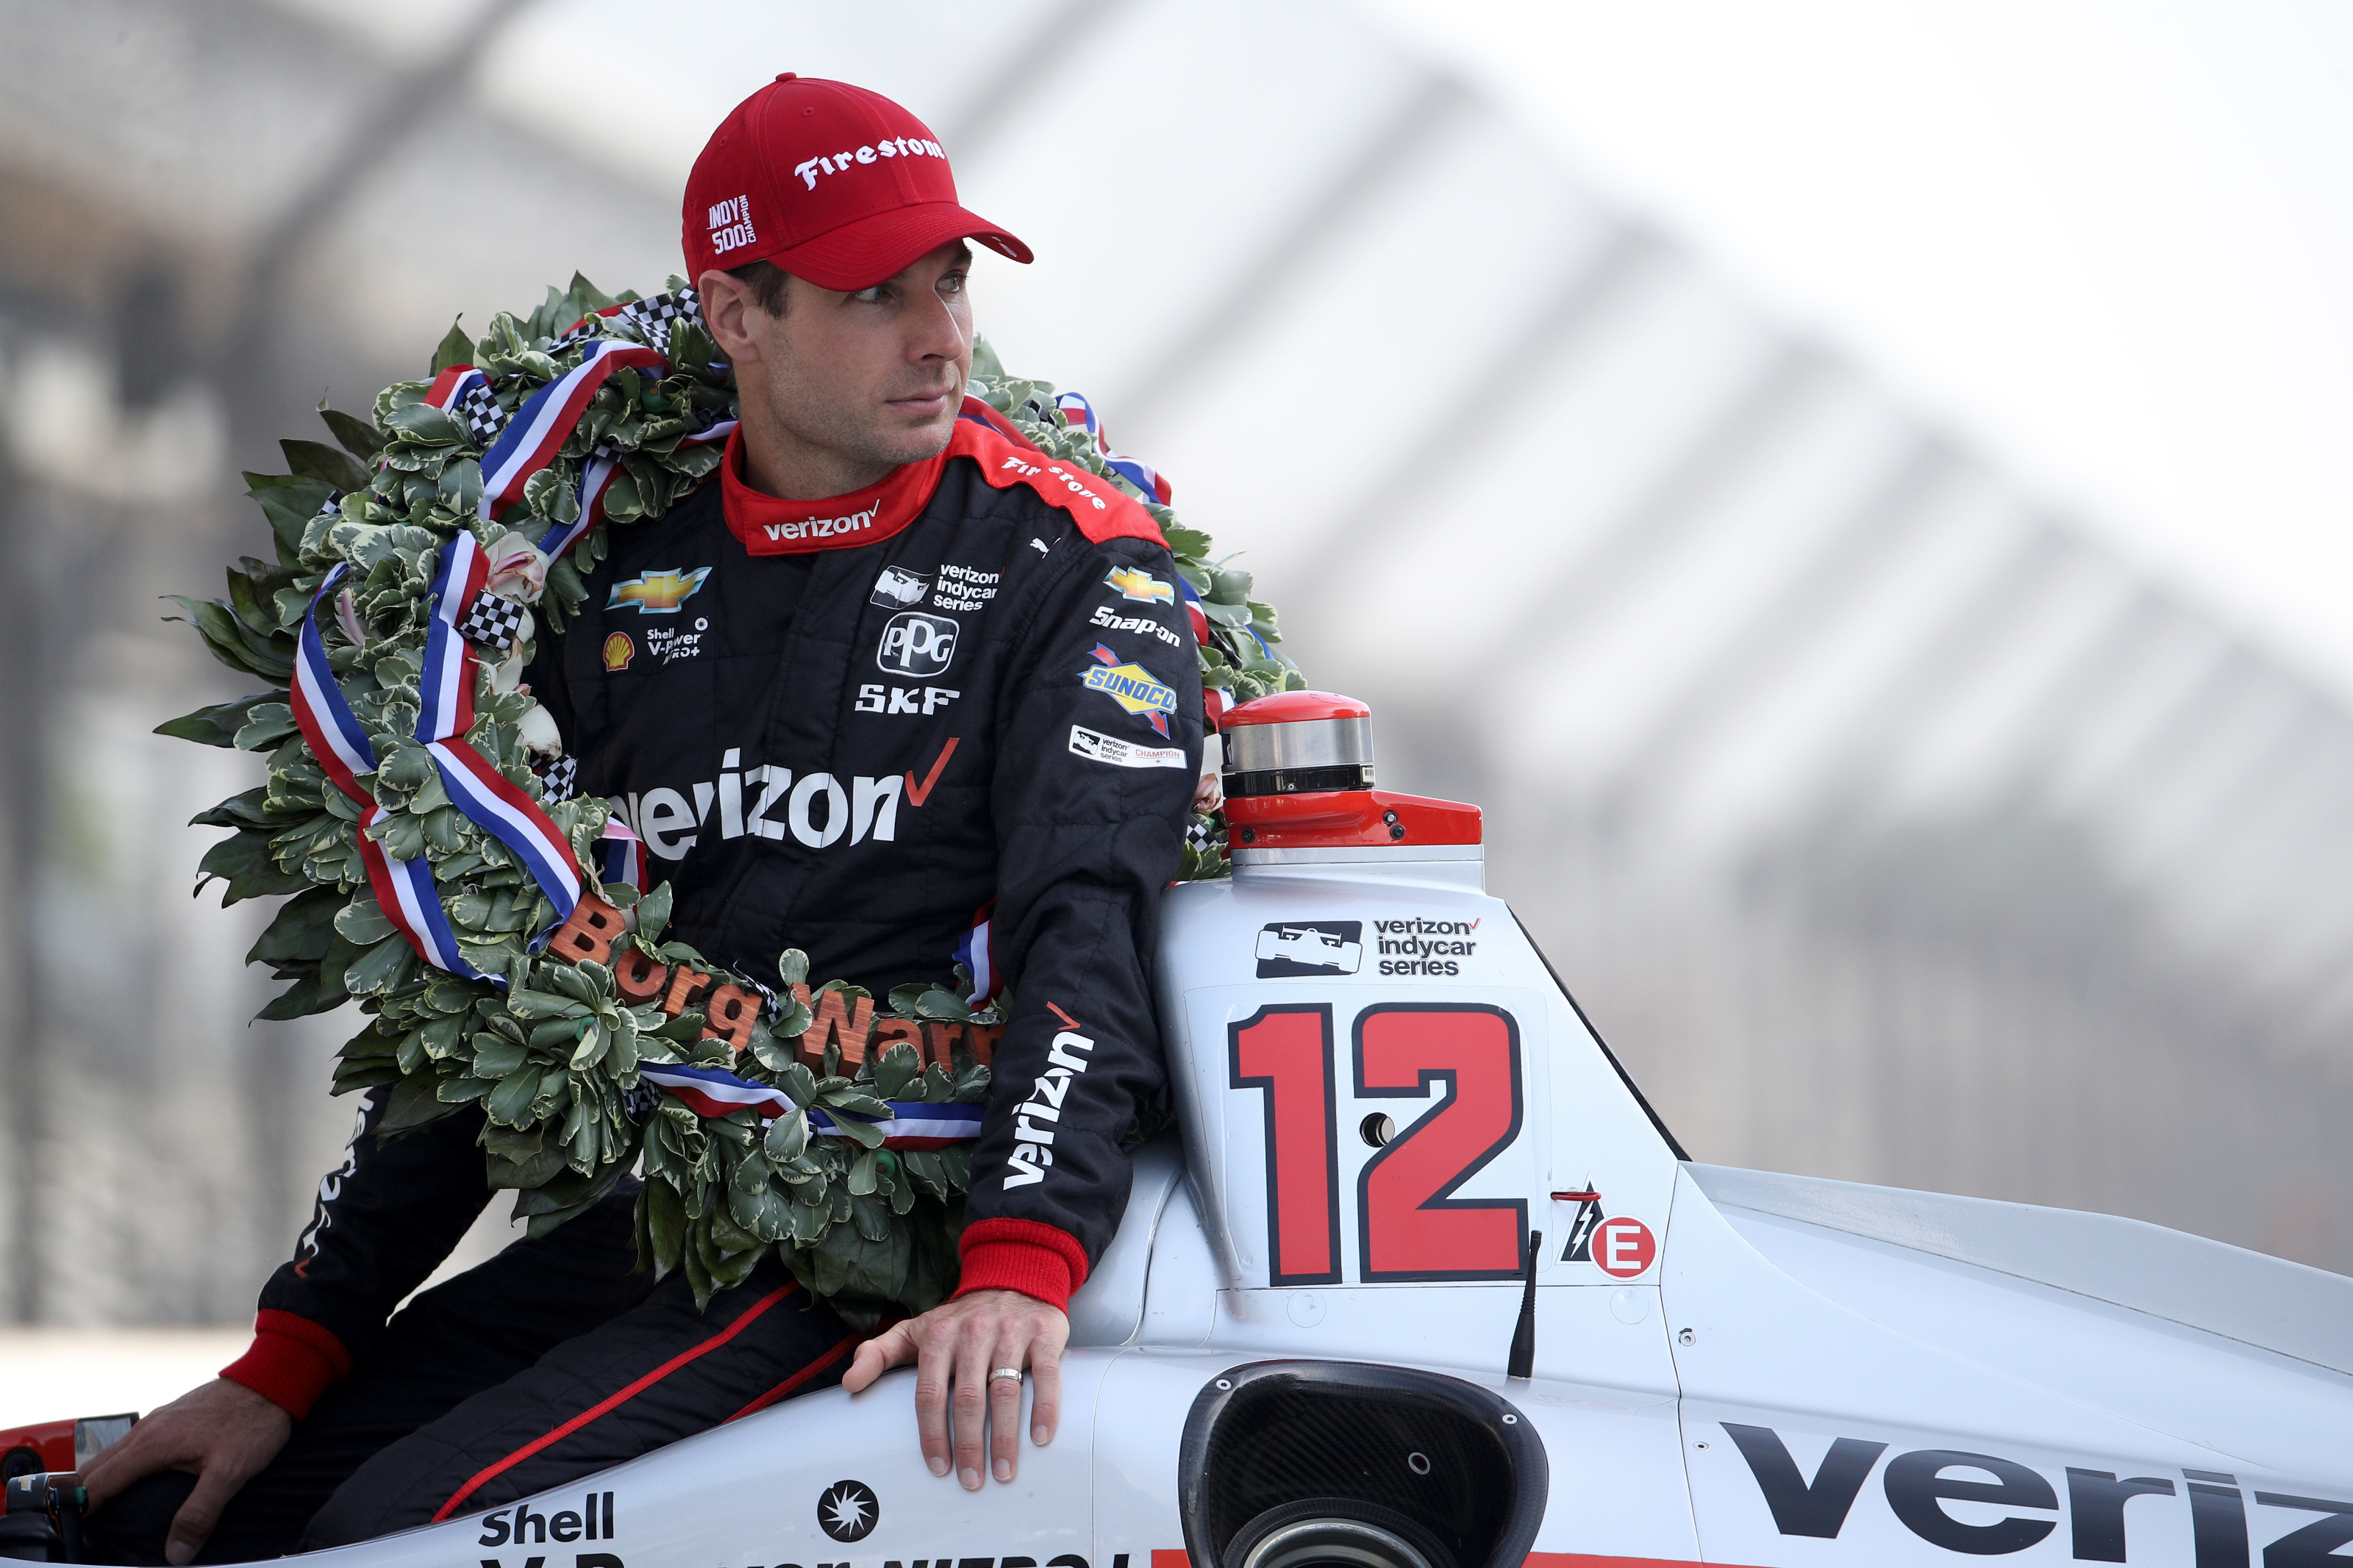 Will Power Chevrolet #12 Winner Indy 500 Champion Indycar Series 2018 Team Pensk